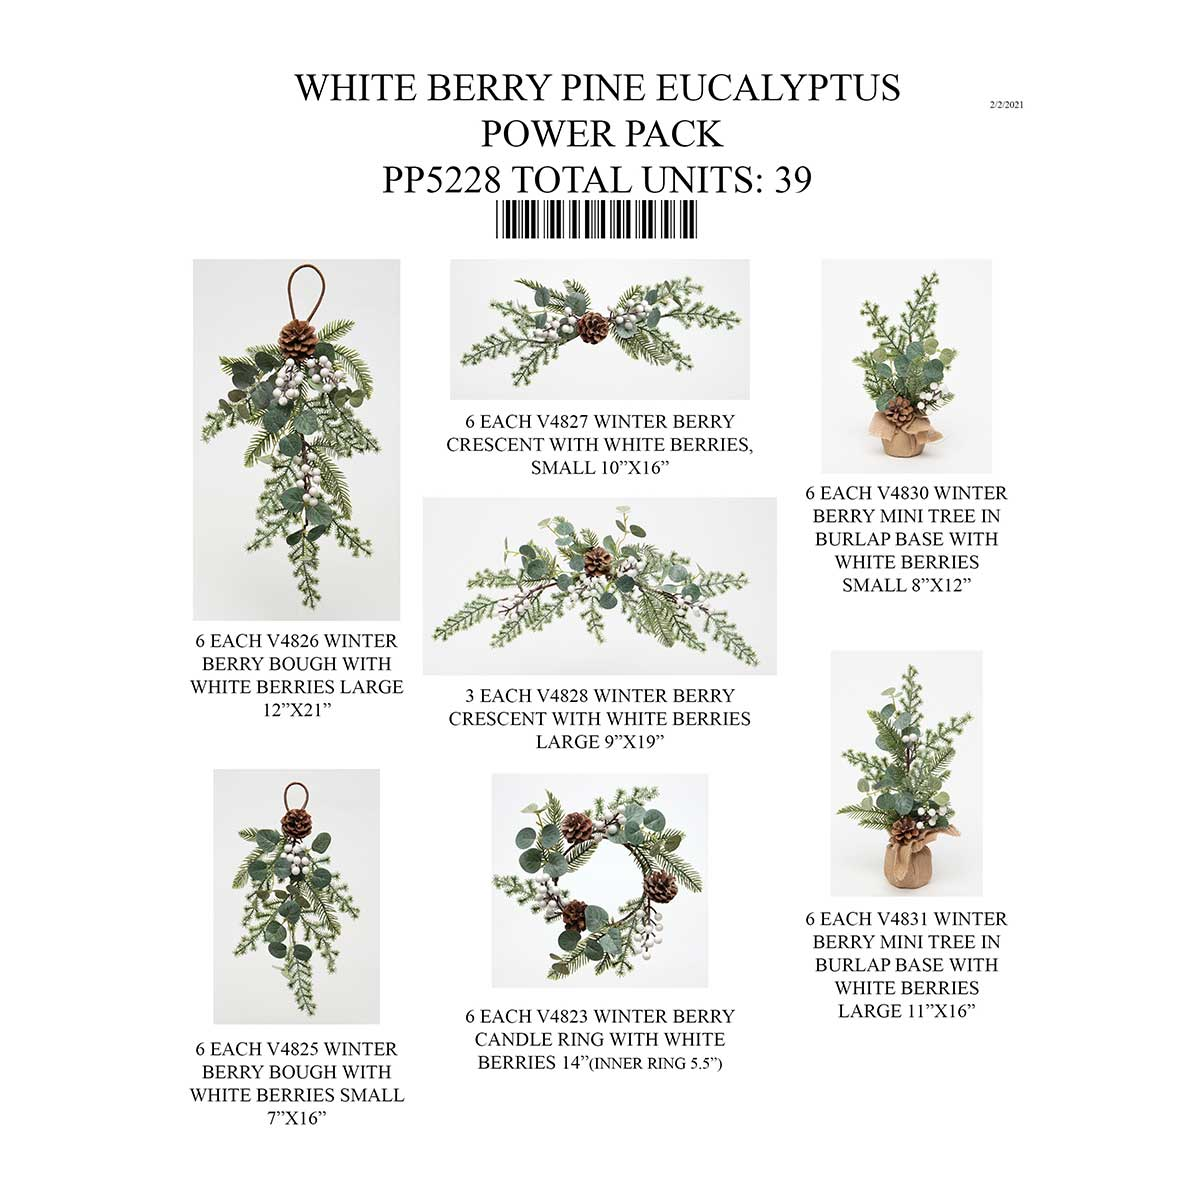 PINE EUCALYPTUS WHITE BERRY POWER PACK 39 UNITS PP5228